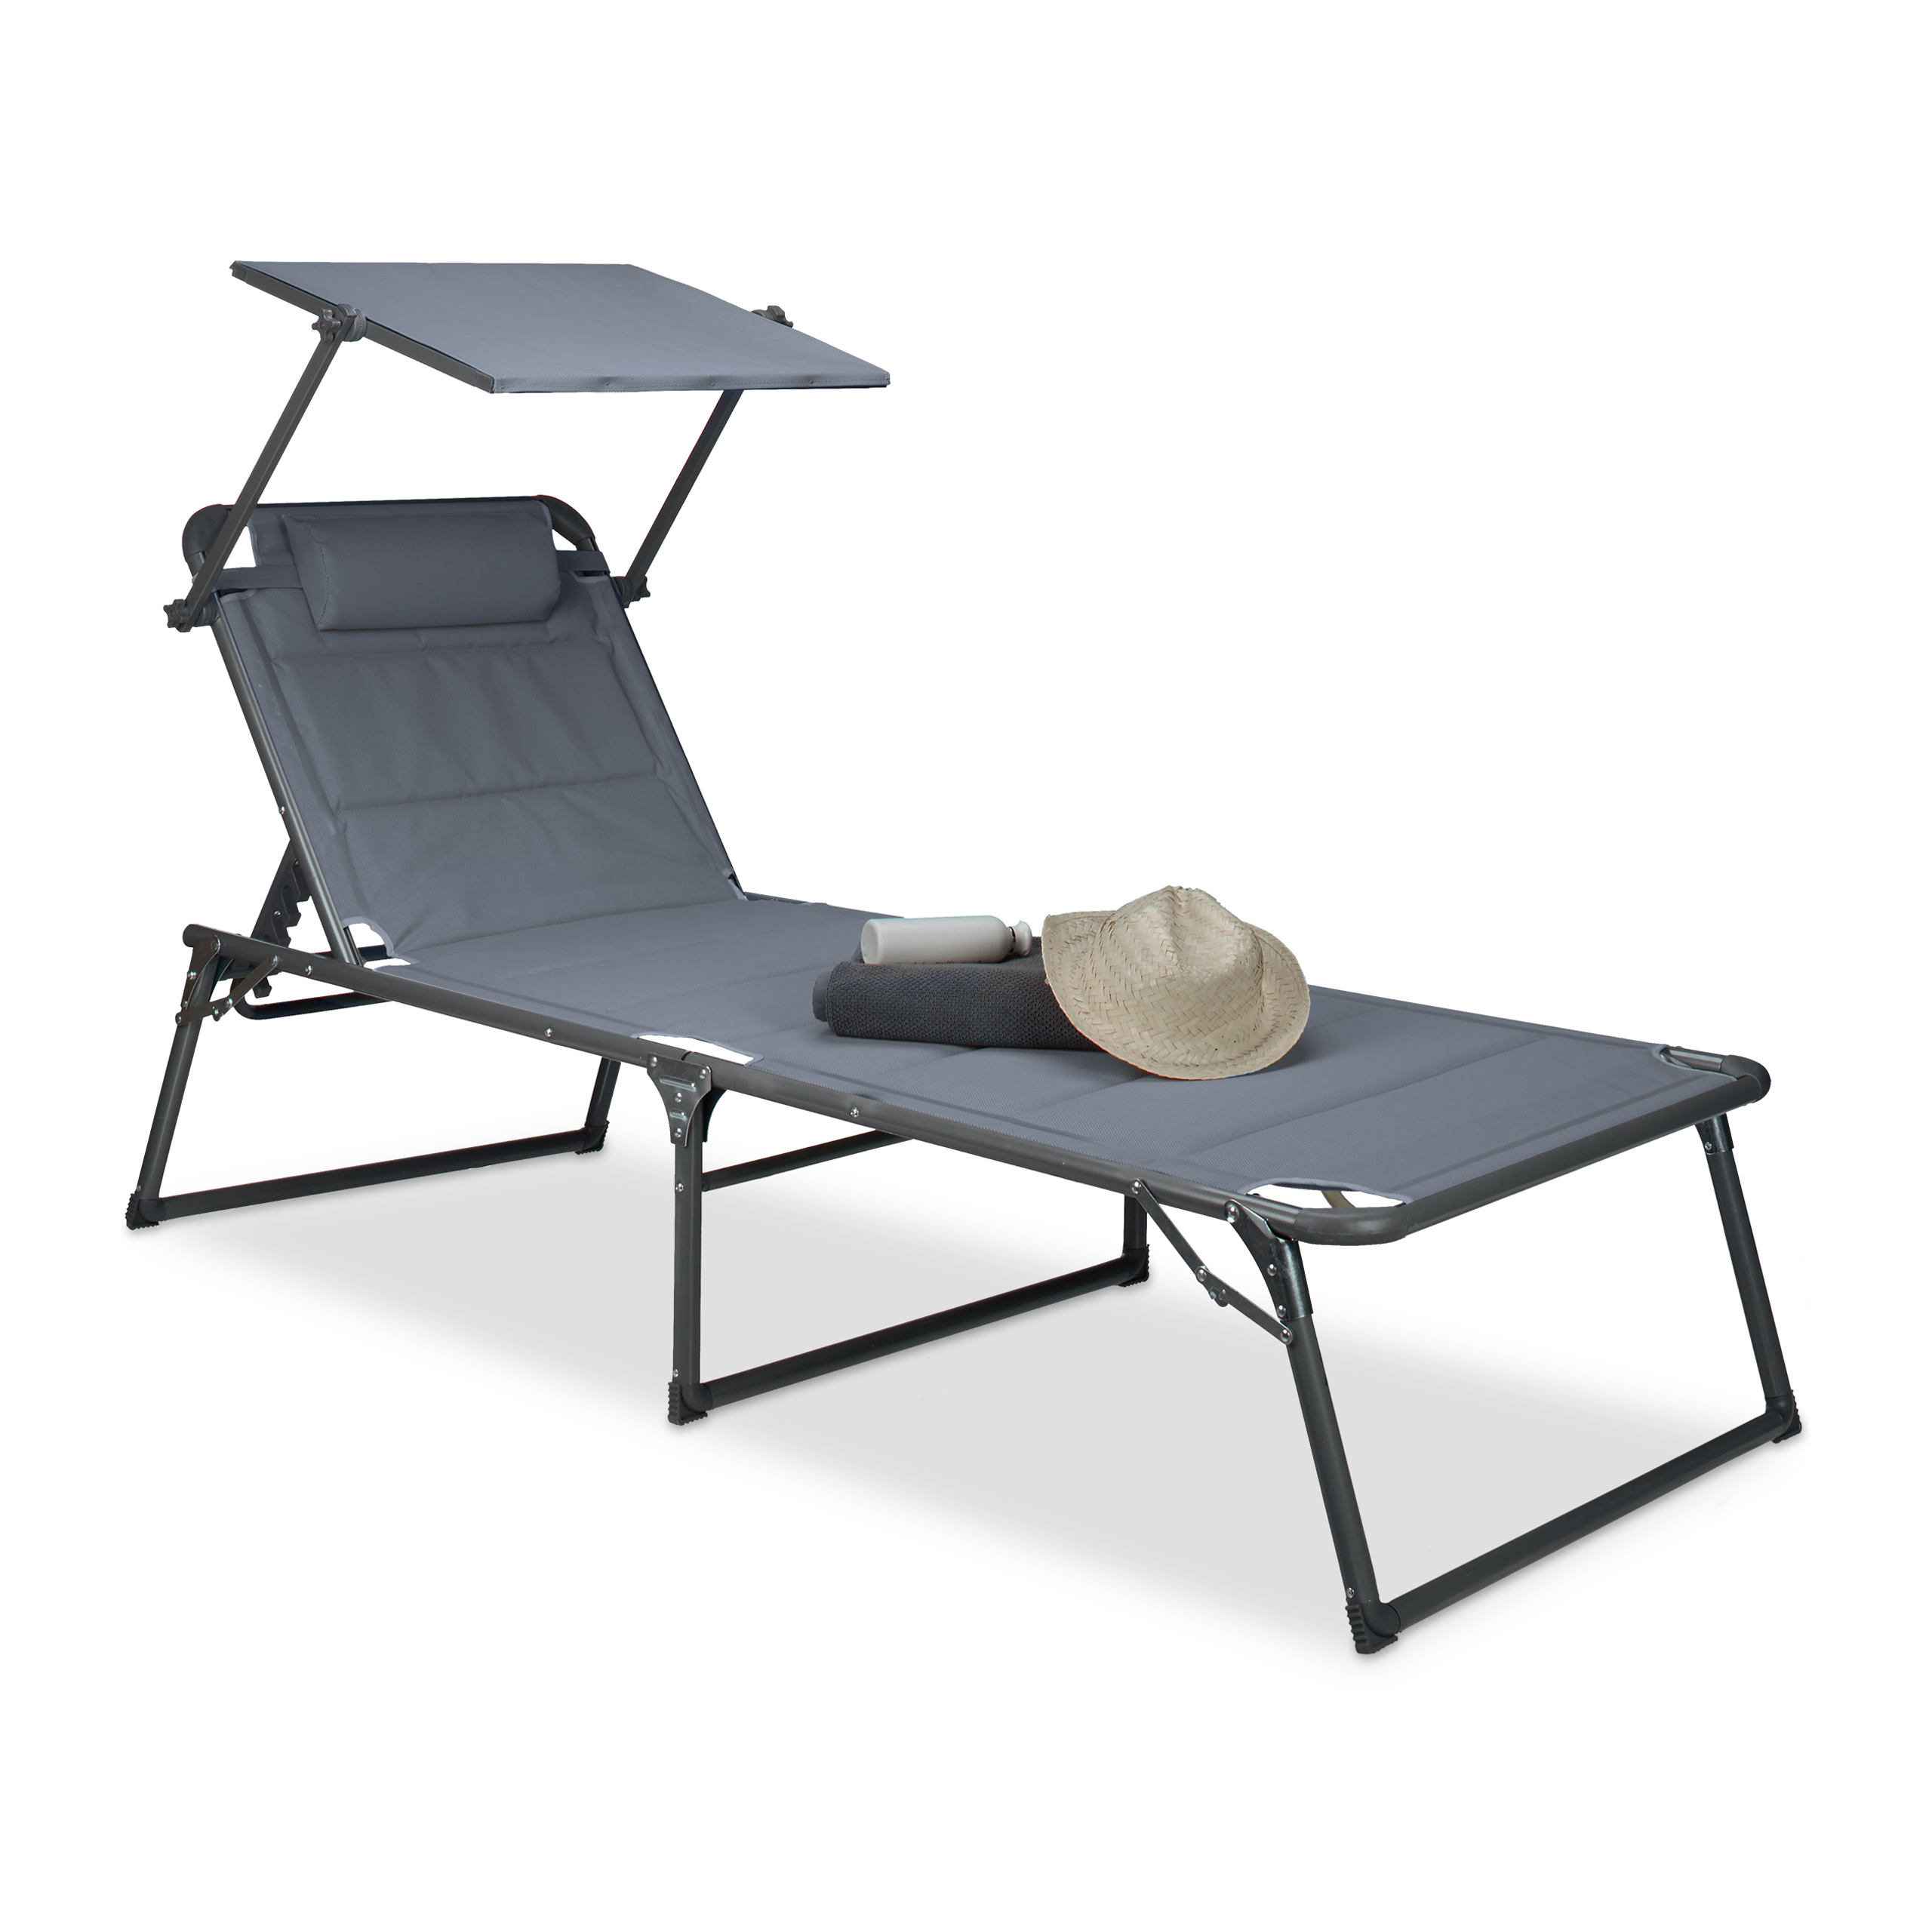 Relaxdays Chaise longue Transat Pare-soleil pliante Jardin HxLxP 37 on chaise sofa sleeper, chaise recliner chair, chaise furniture,